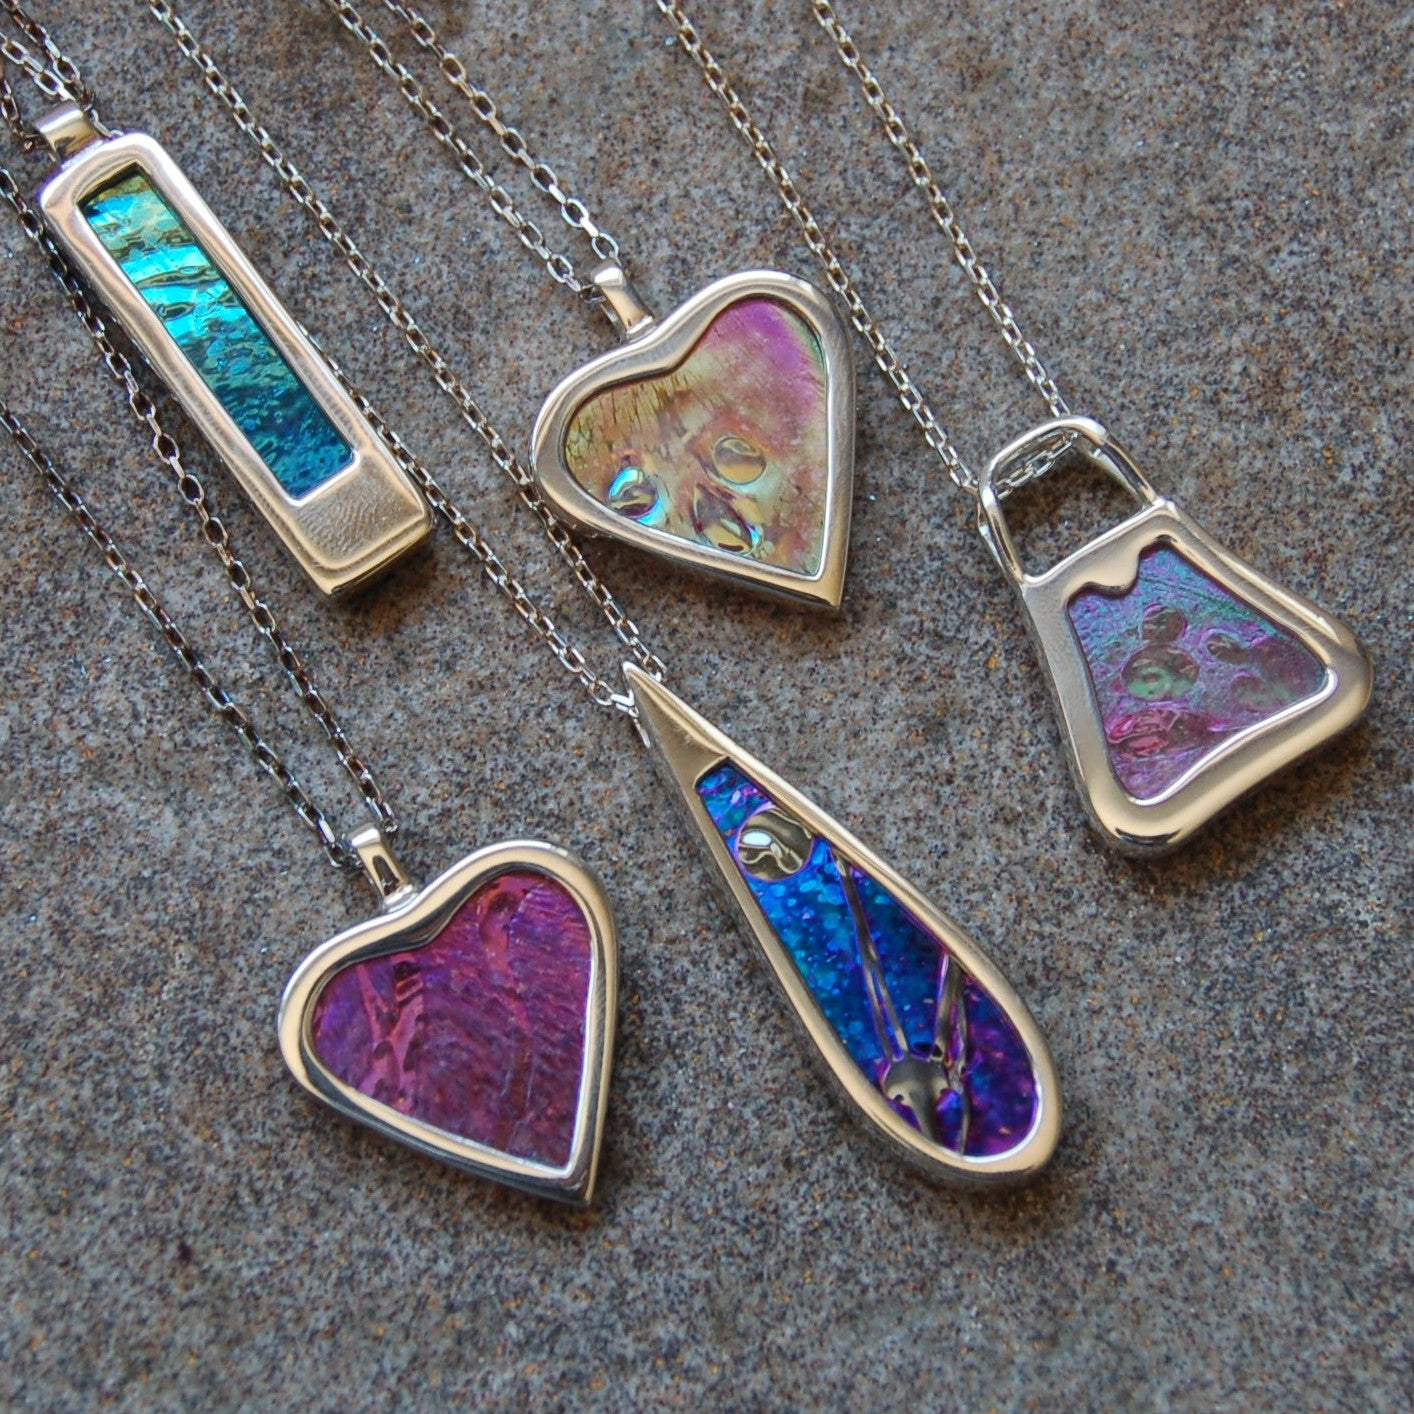 Hallmarked sterling silver pendants with memorial glassand ashes @ £160 each.